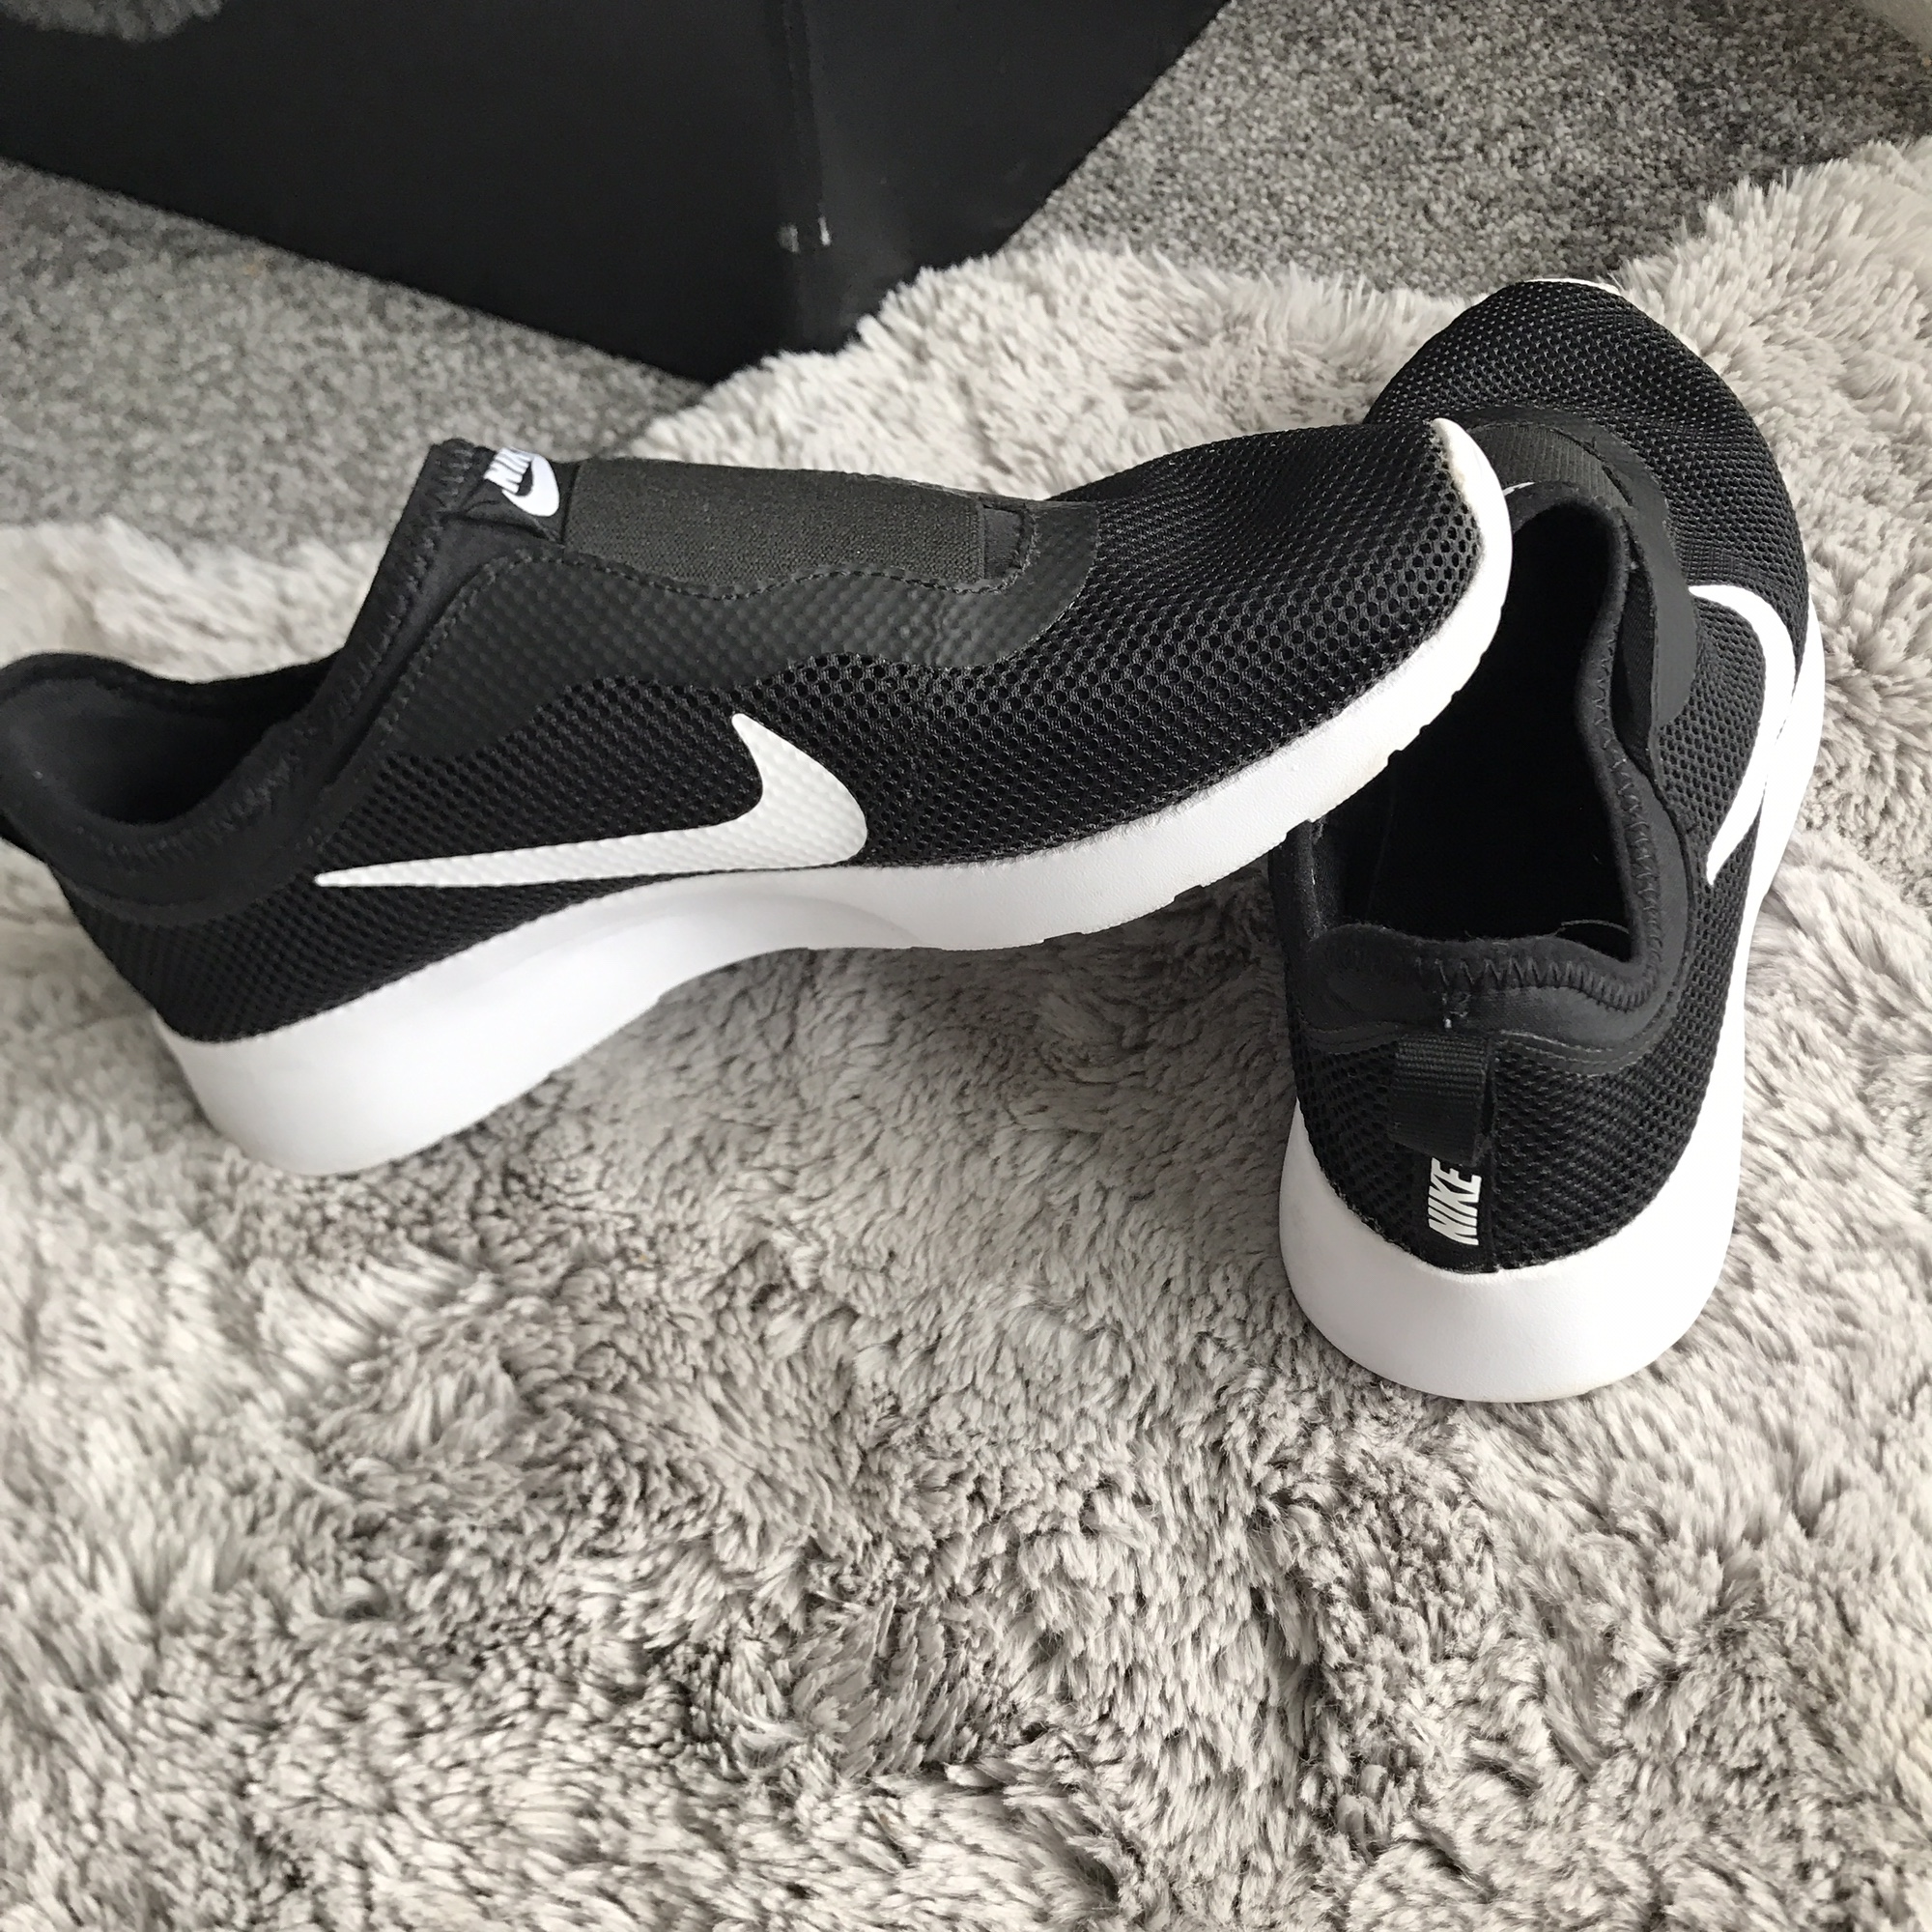 Nike laceless trainers worn once as you